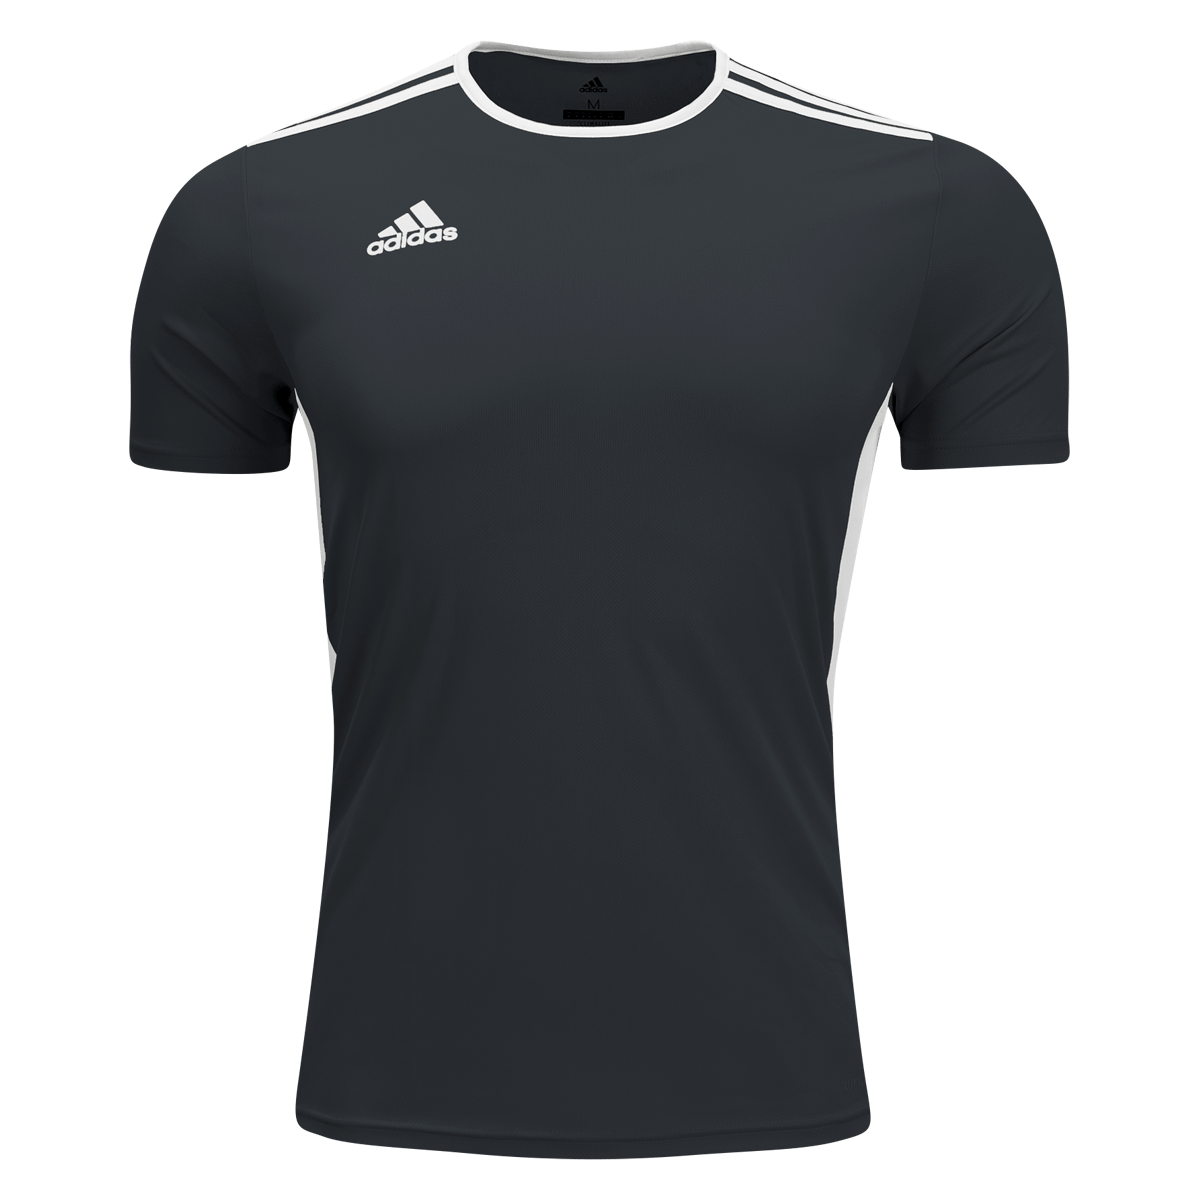 adidas Black/White Entrada Rugby Jersey